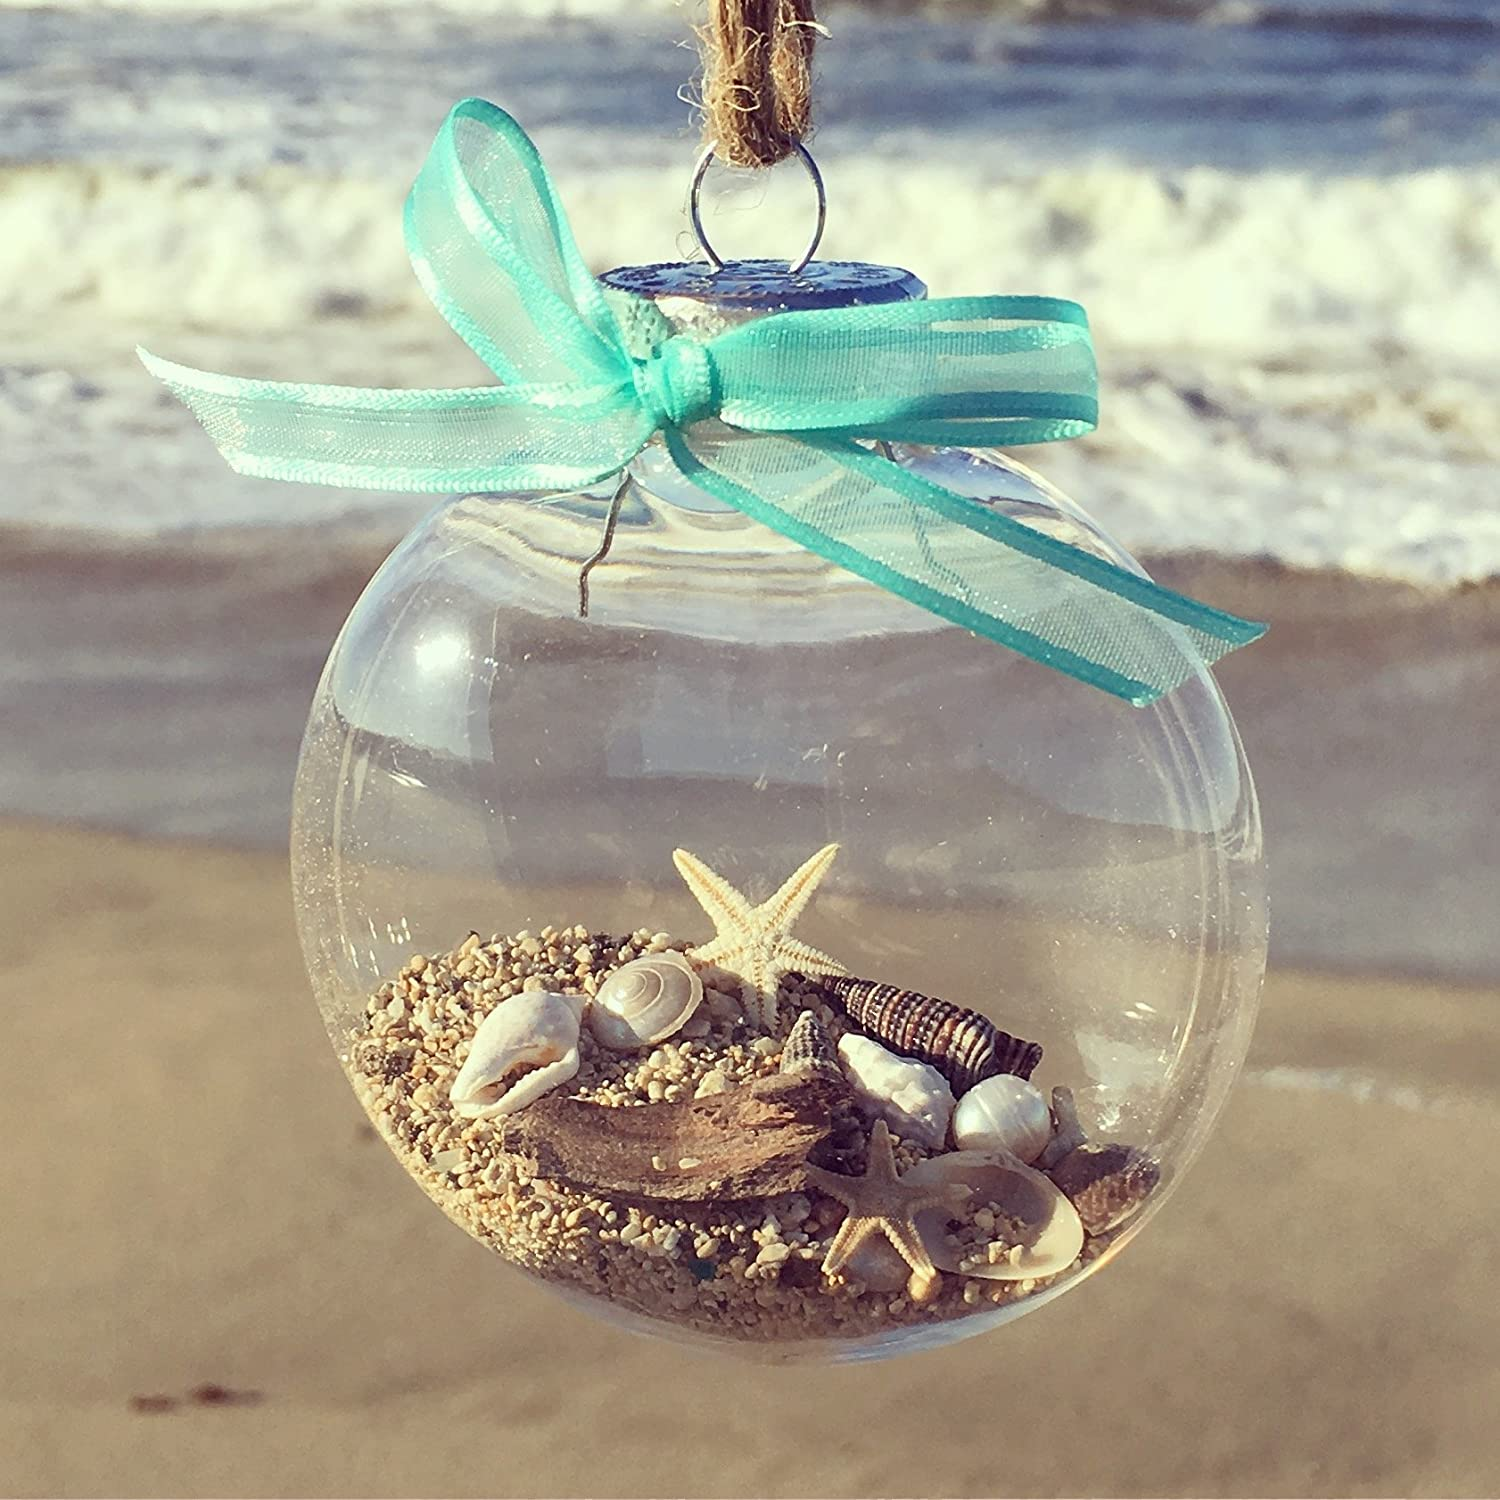 Amazoncom Beach Ornament, Beach Ornament For Christmas Tree, Christmas Ornament,